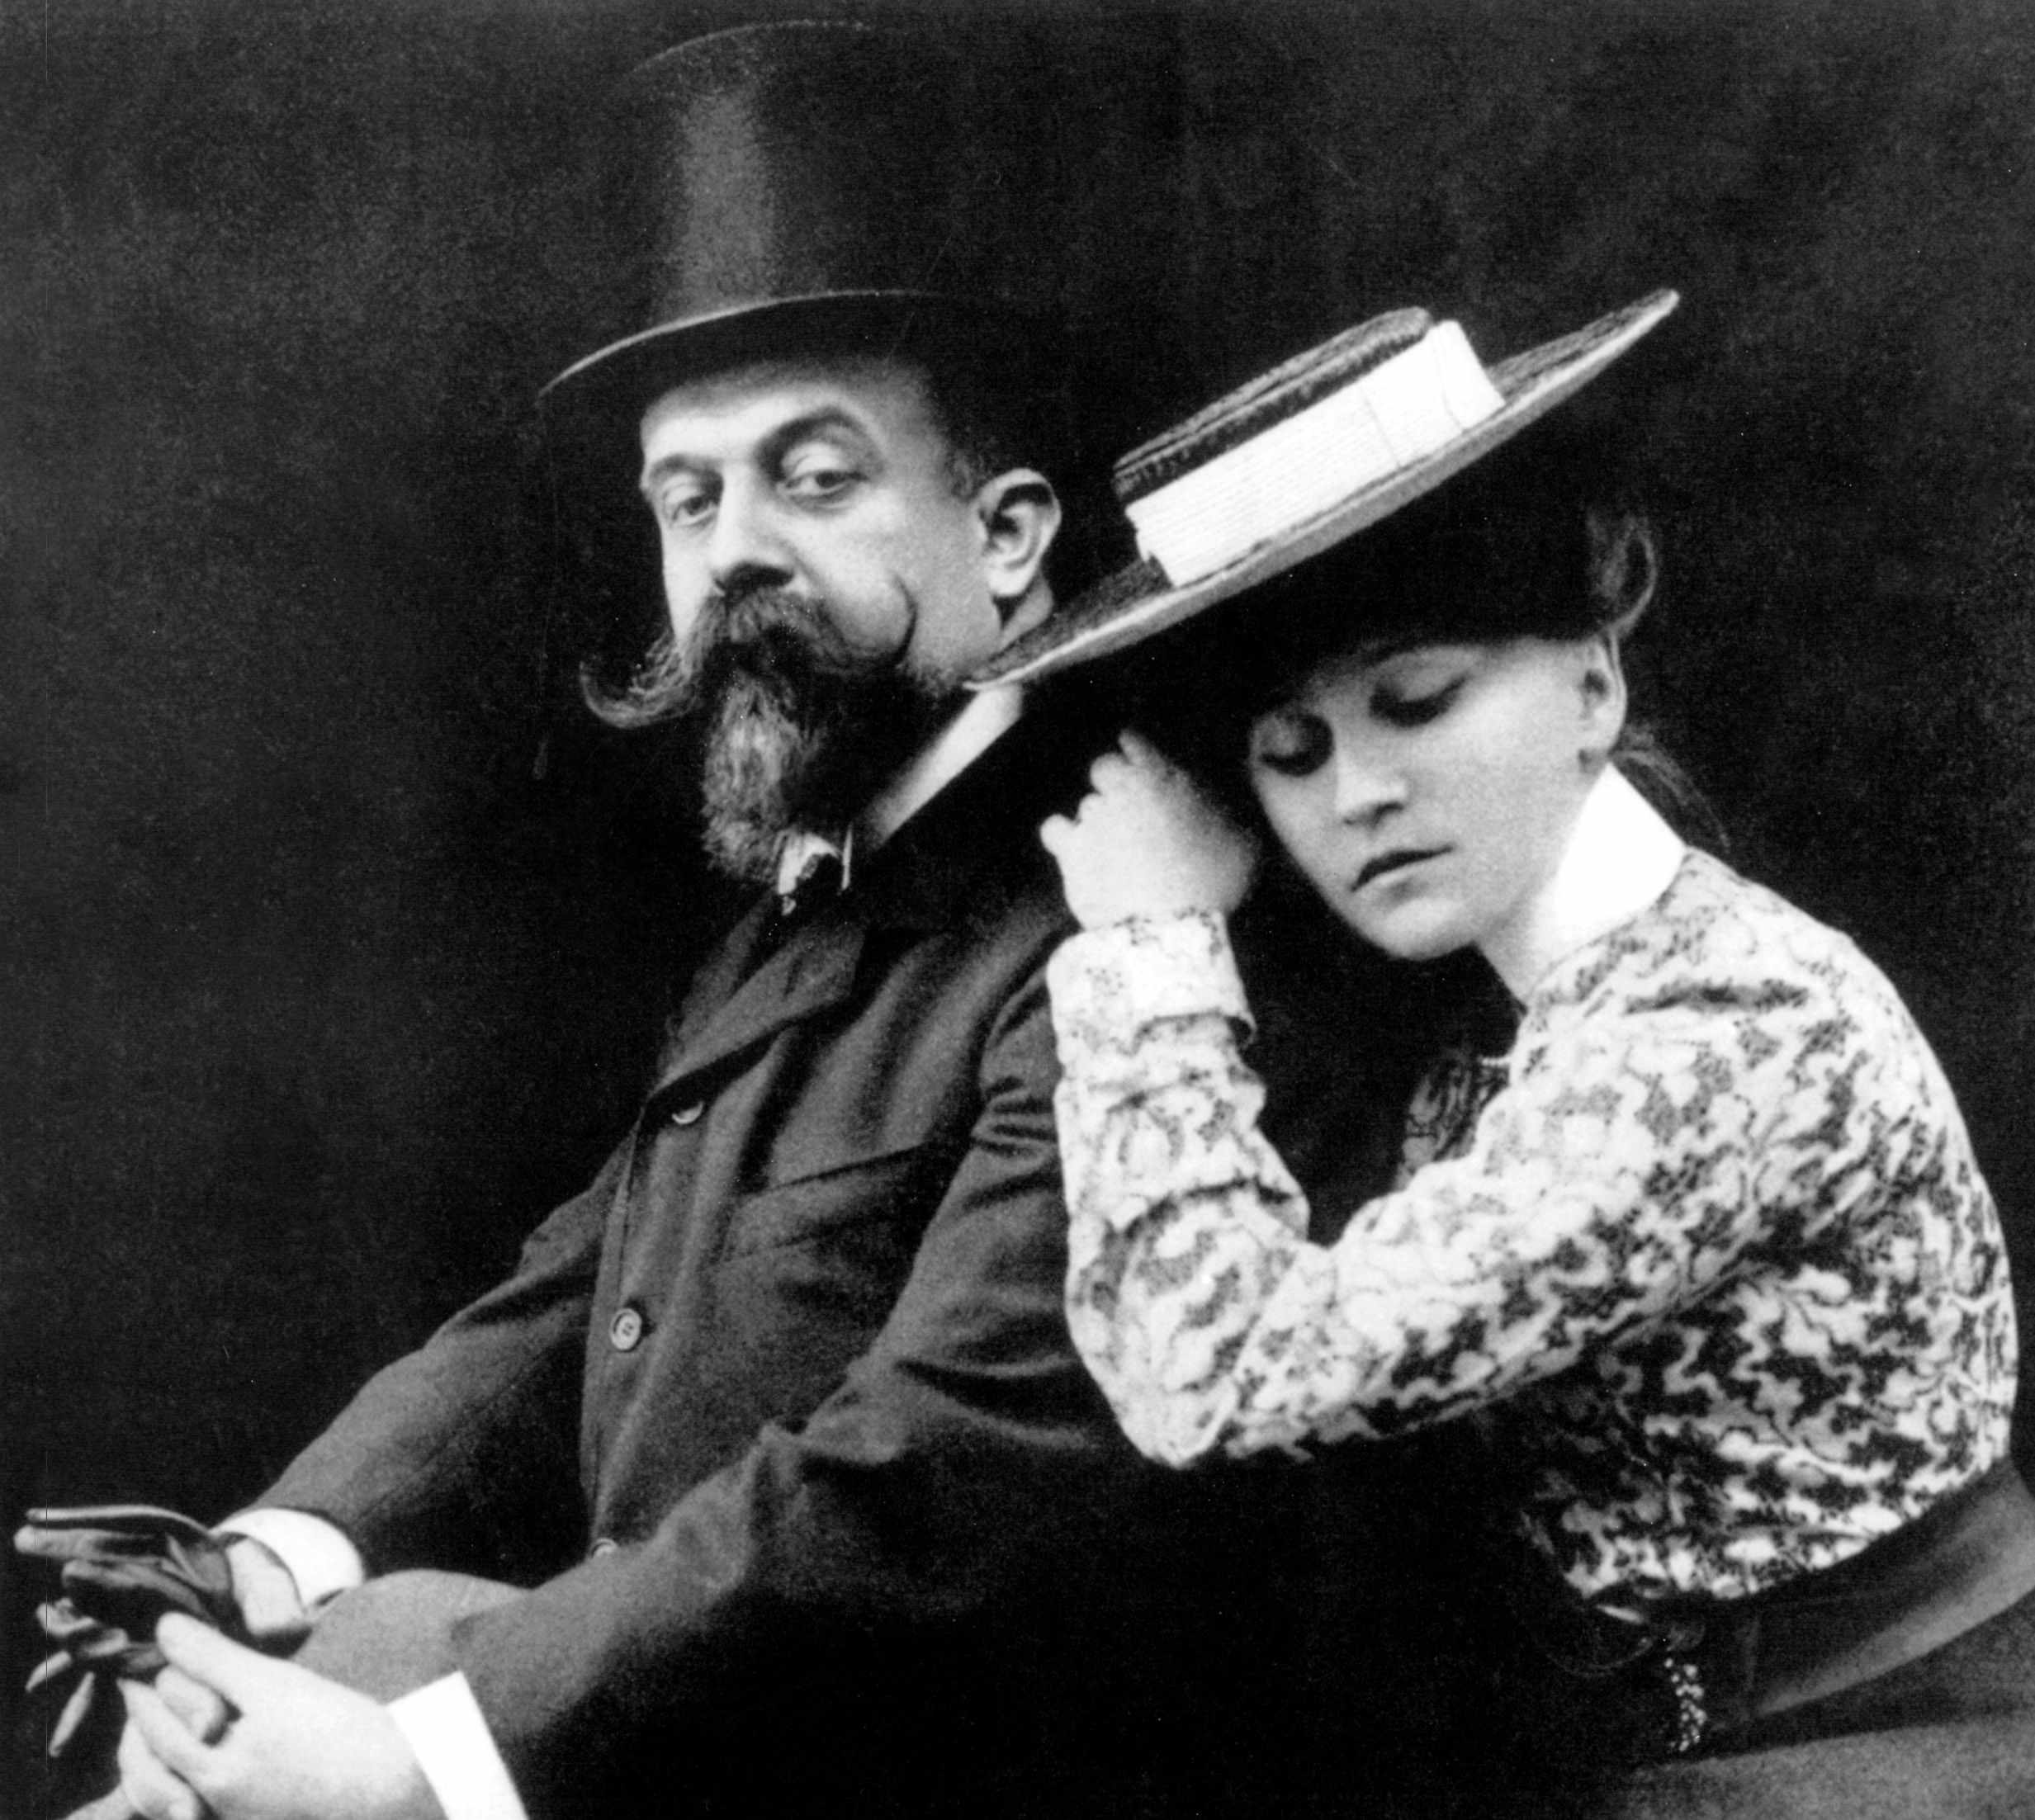 French writer Sidonie-Gabrielle Colette and husband Willy, photographed c1902. (Photo by Apic/Getty Images)